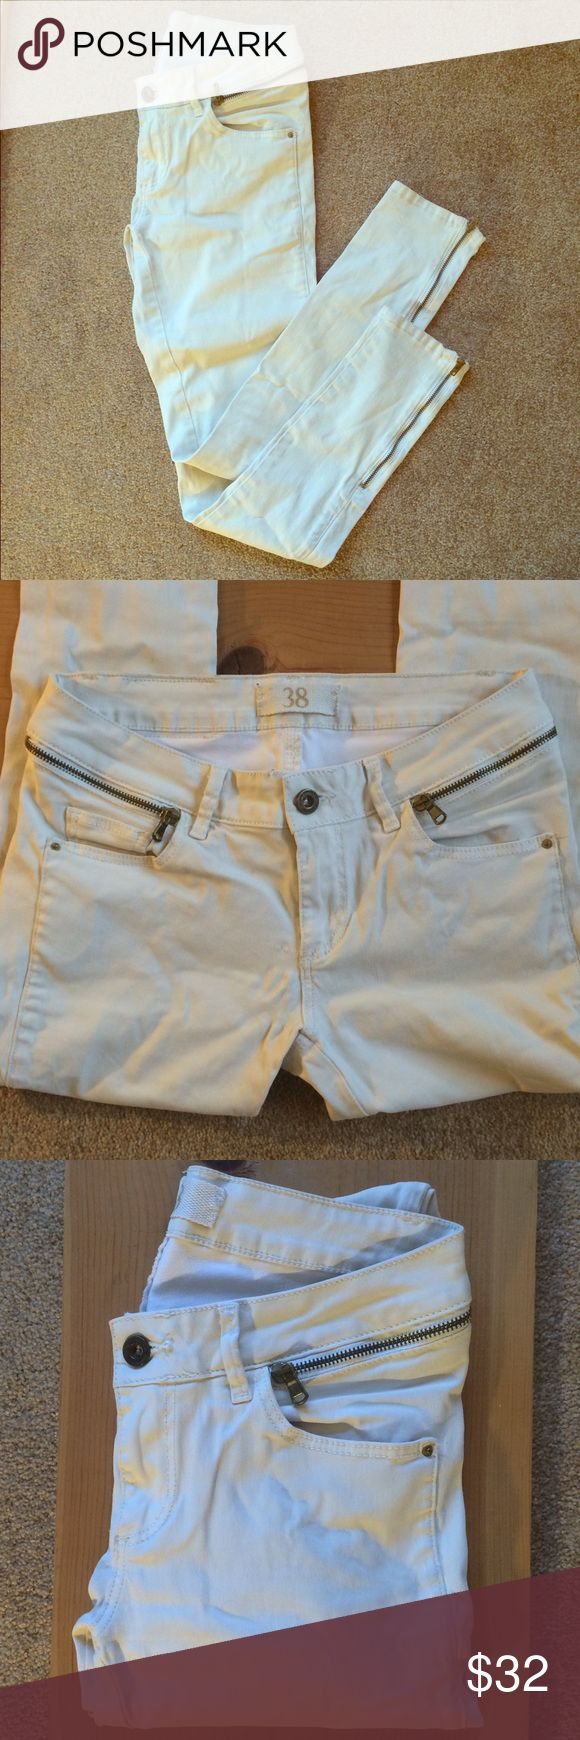 Zara sleek white skinny jeans with zipper details Nice sleek stretch denim from Zara. These guys have been well loved but are still in good shape. Zara Jeans Skinny